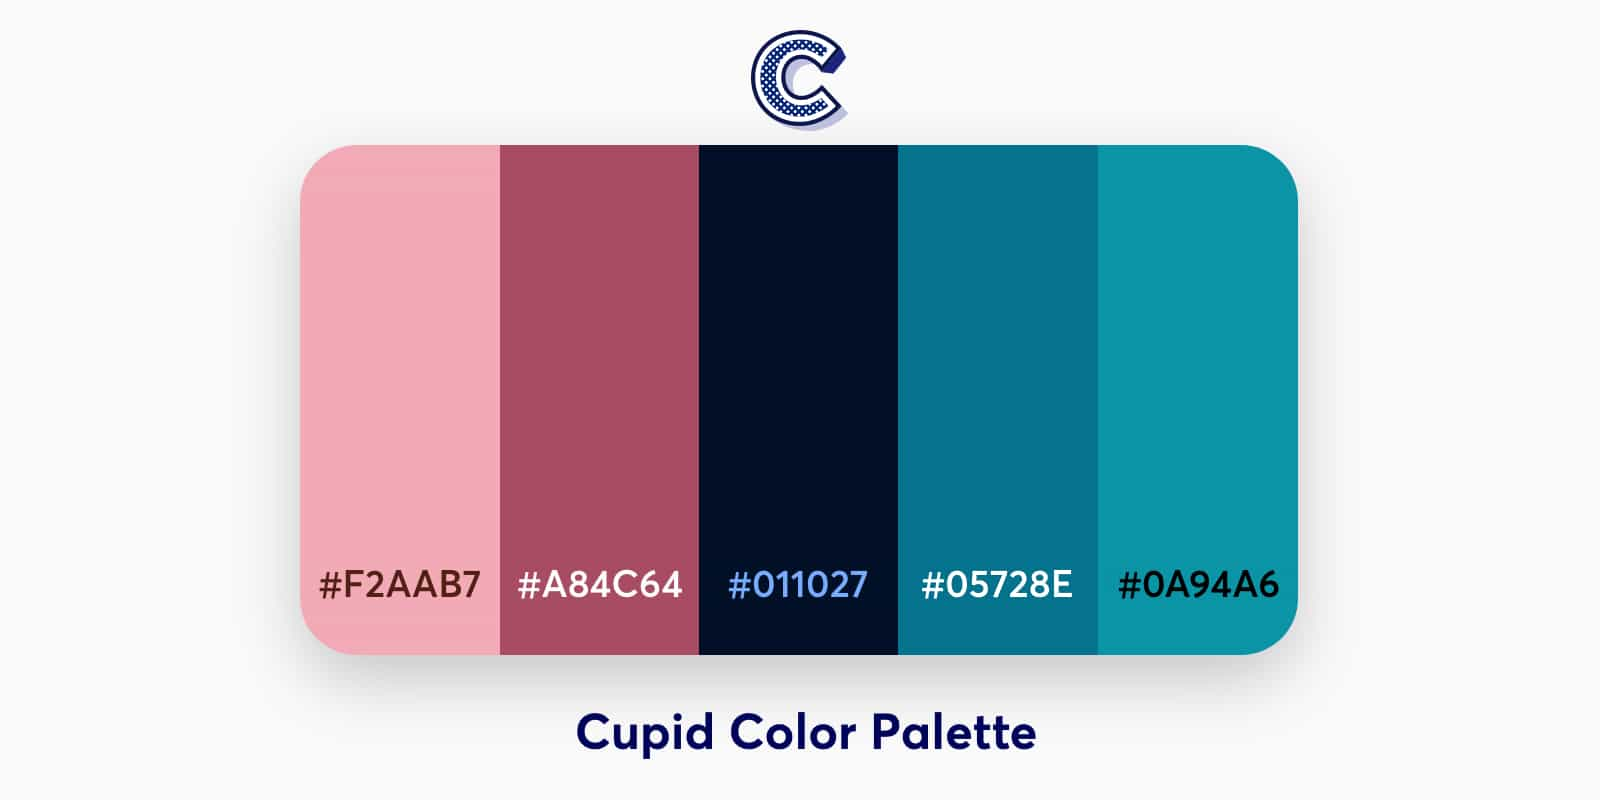 the featued image of cupid color palette